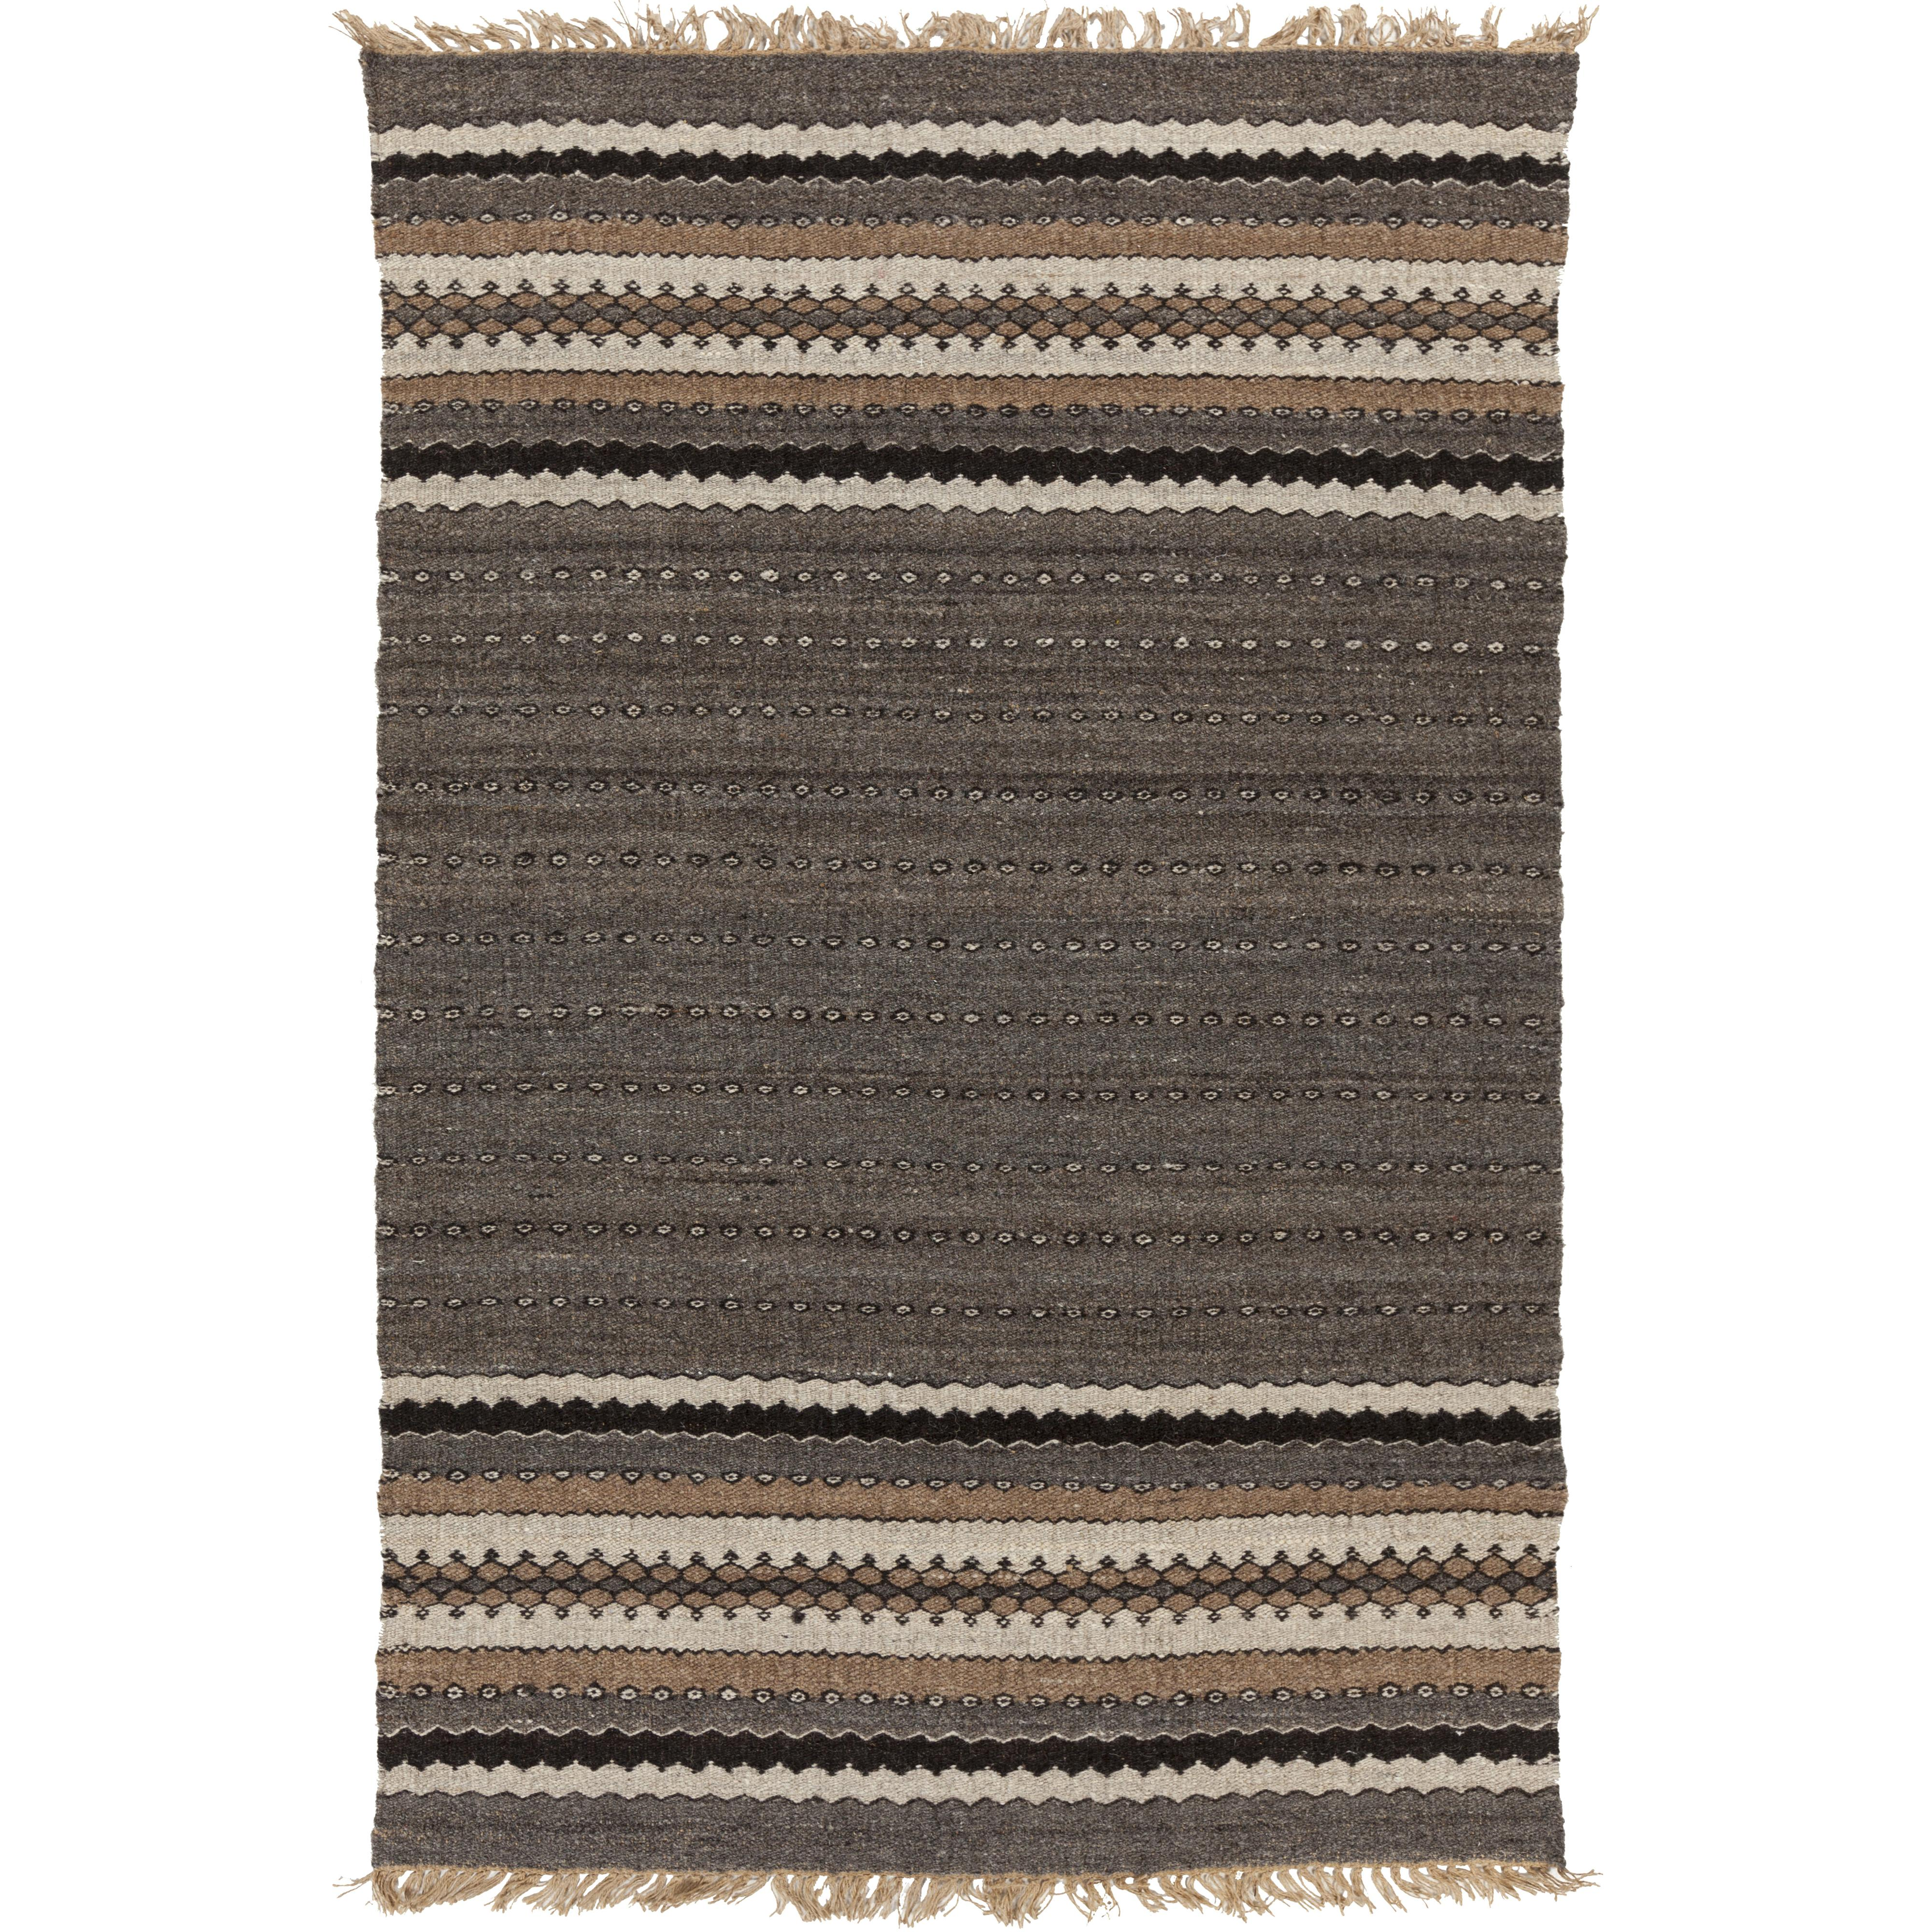 Surya Rugs Camel 8' x 10' - Item Number: CME2000-810